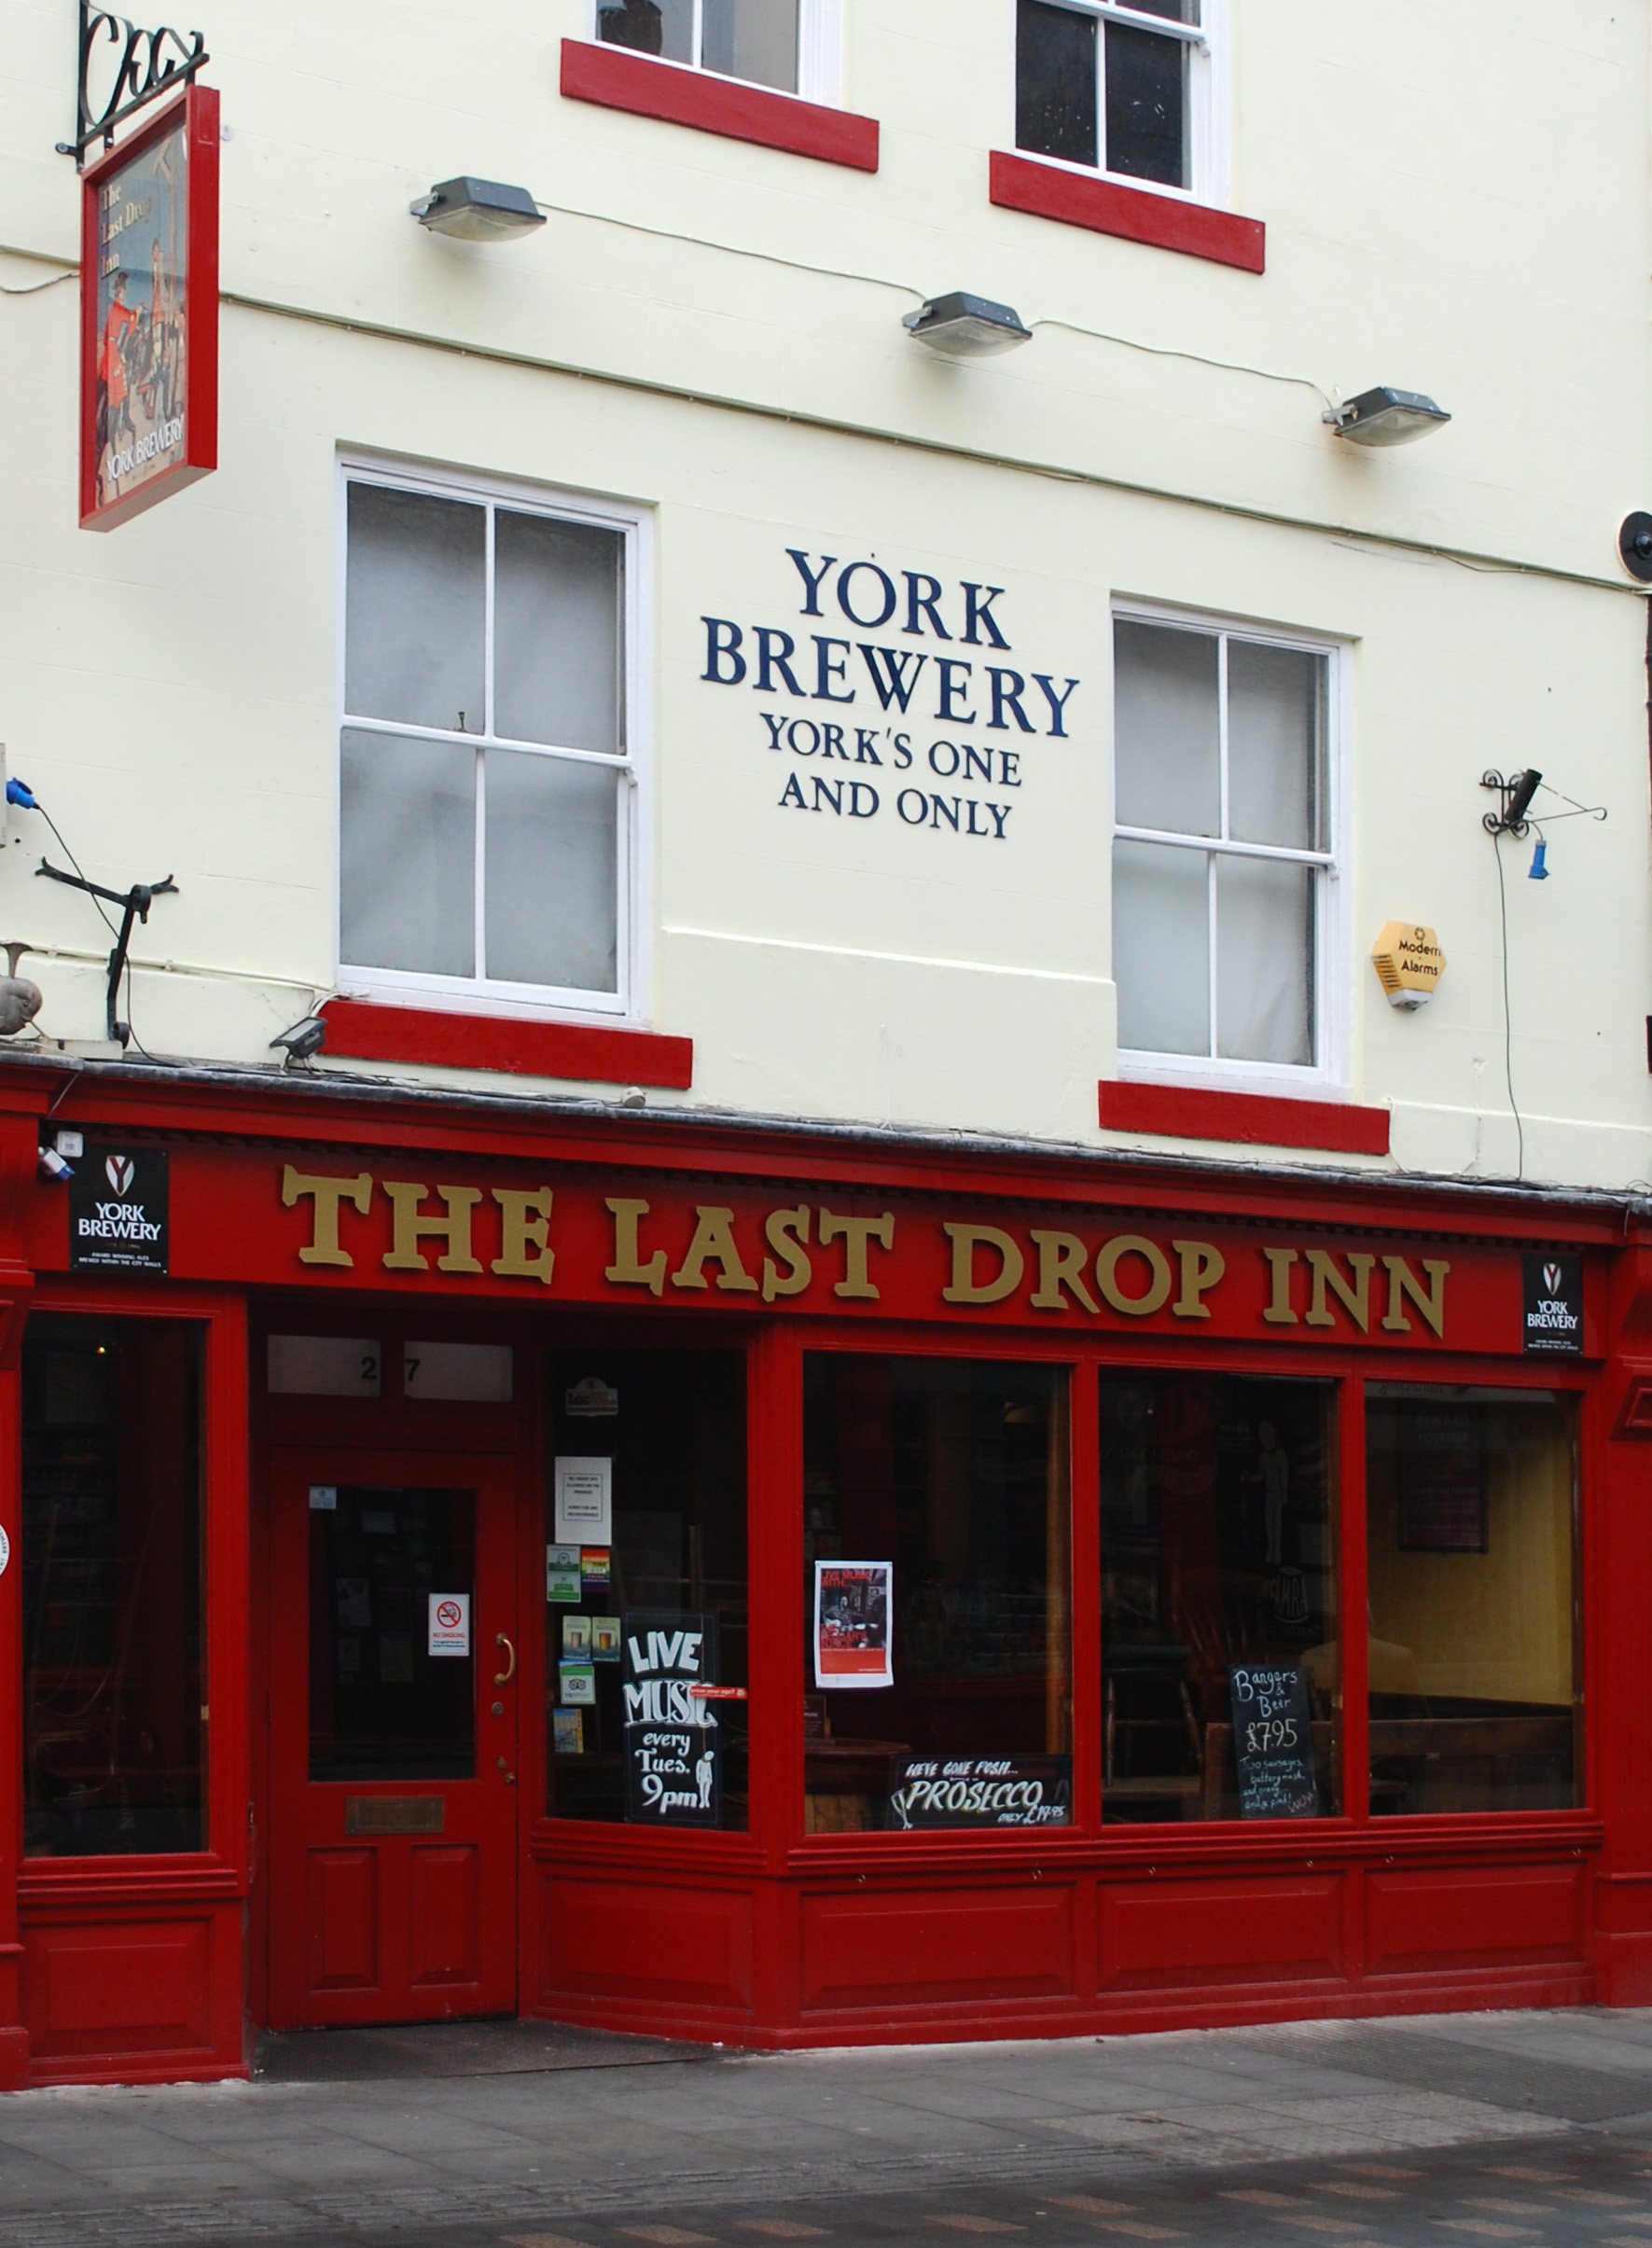 The Last Drop Inn York